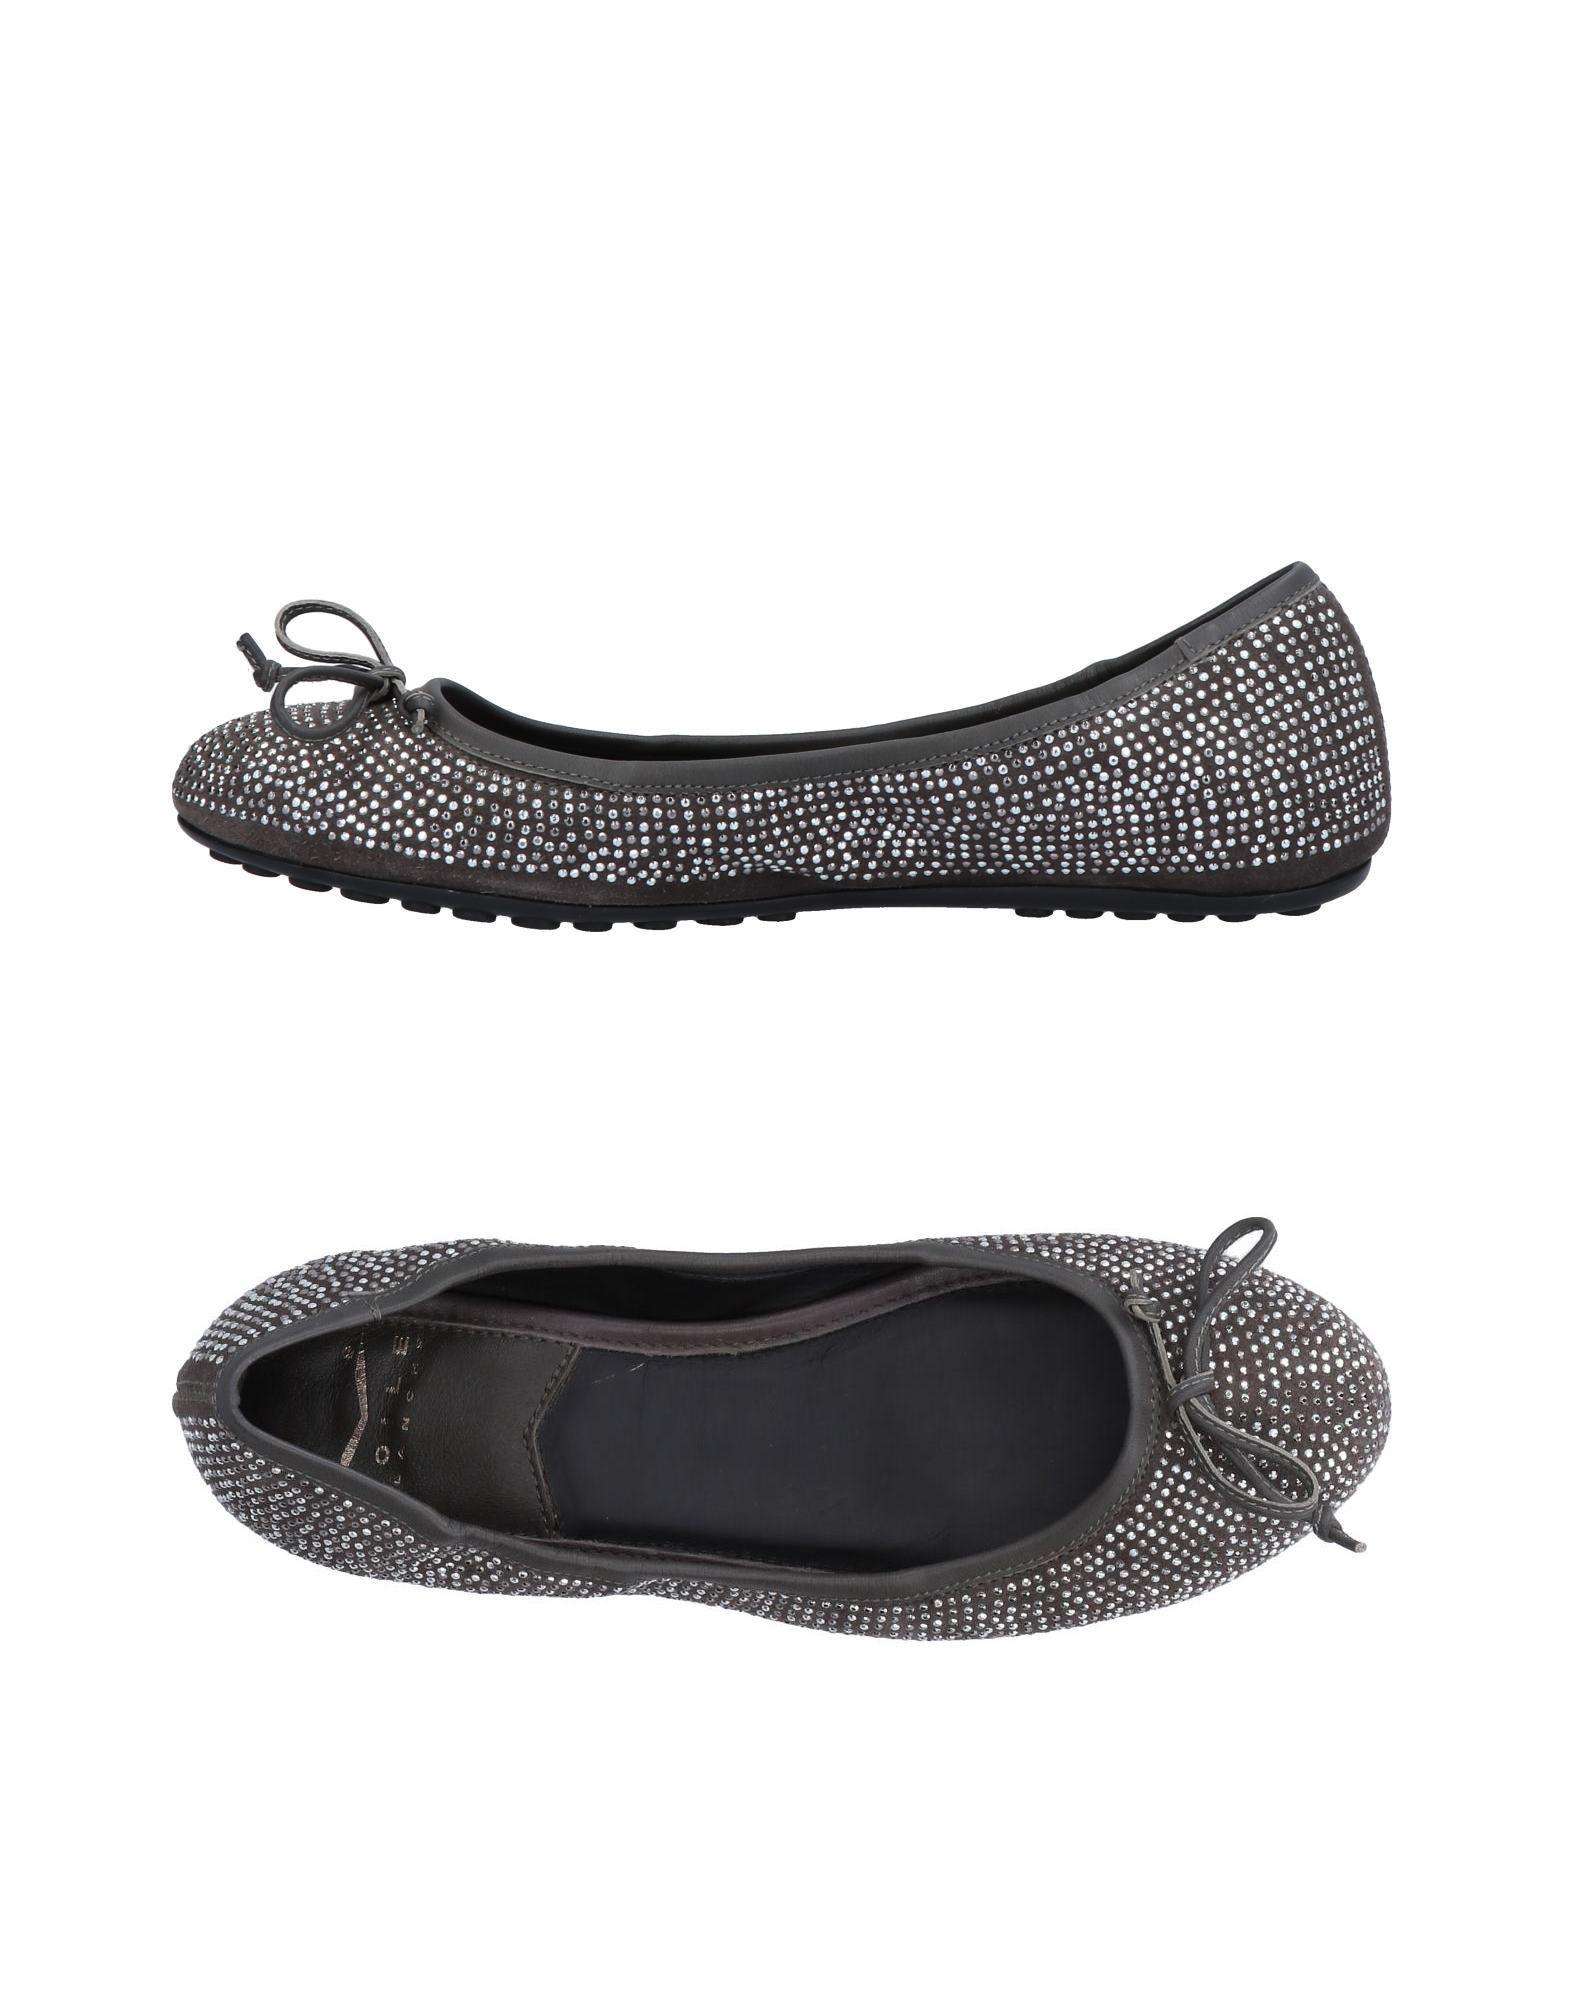 VOILE BLANCHE Ballet flats big sale sale online buy cheap pay with visa cheap collections nicekicks cheap online outlet marketable QB4a2IEzB